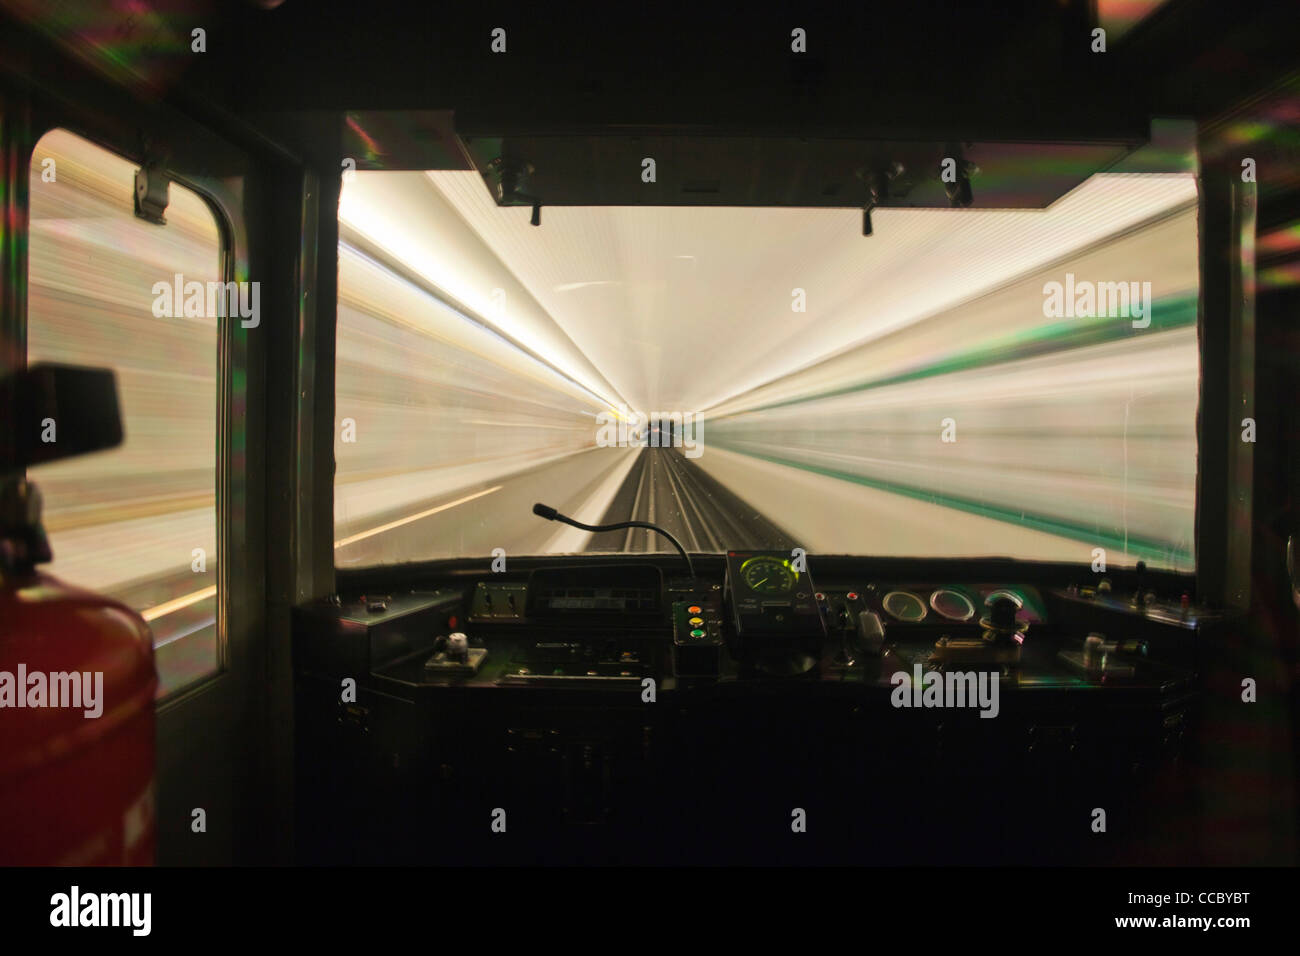 Train moving through tunnel, viewed through window - Stock Image